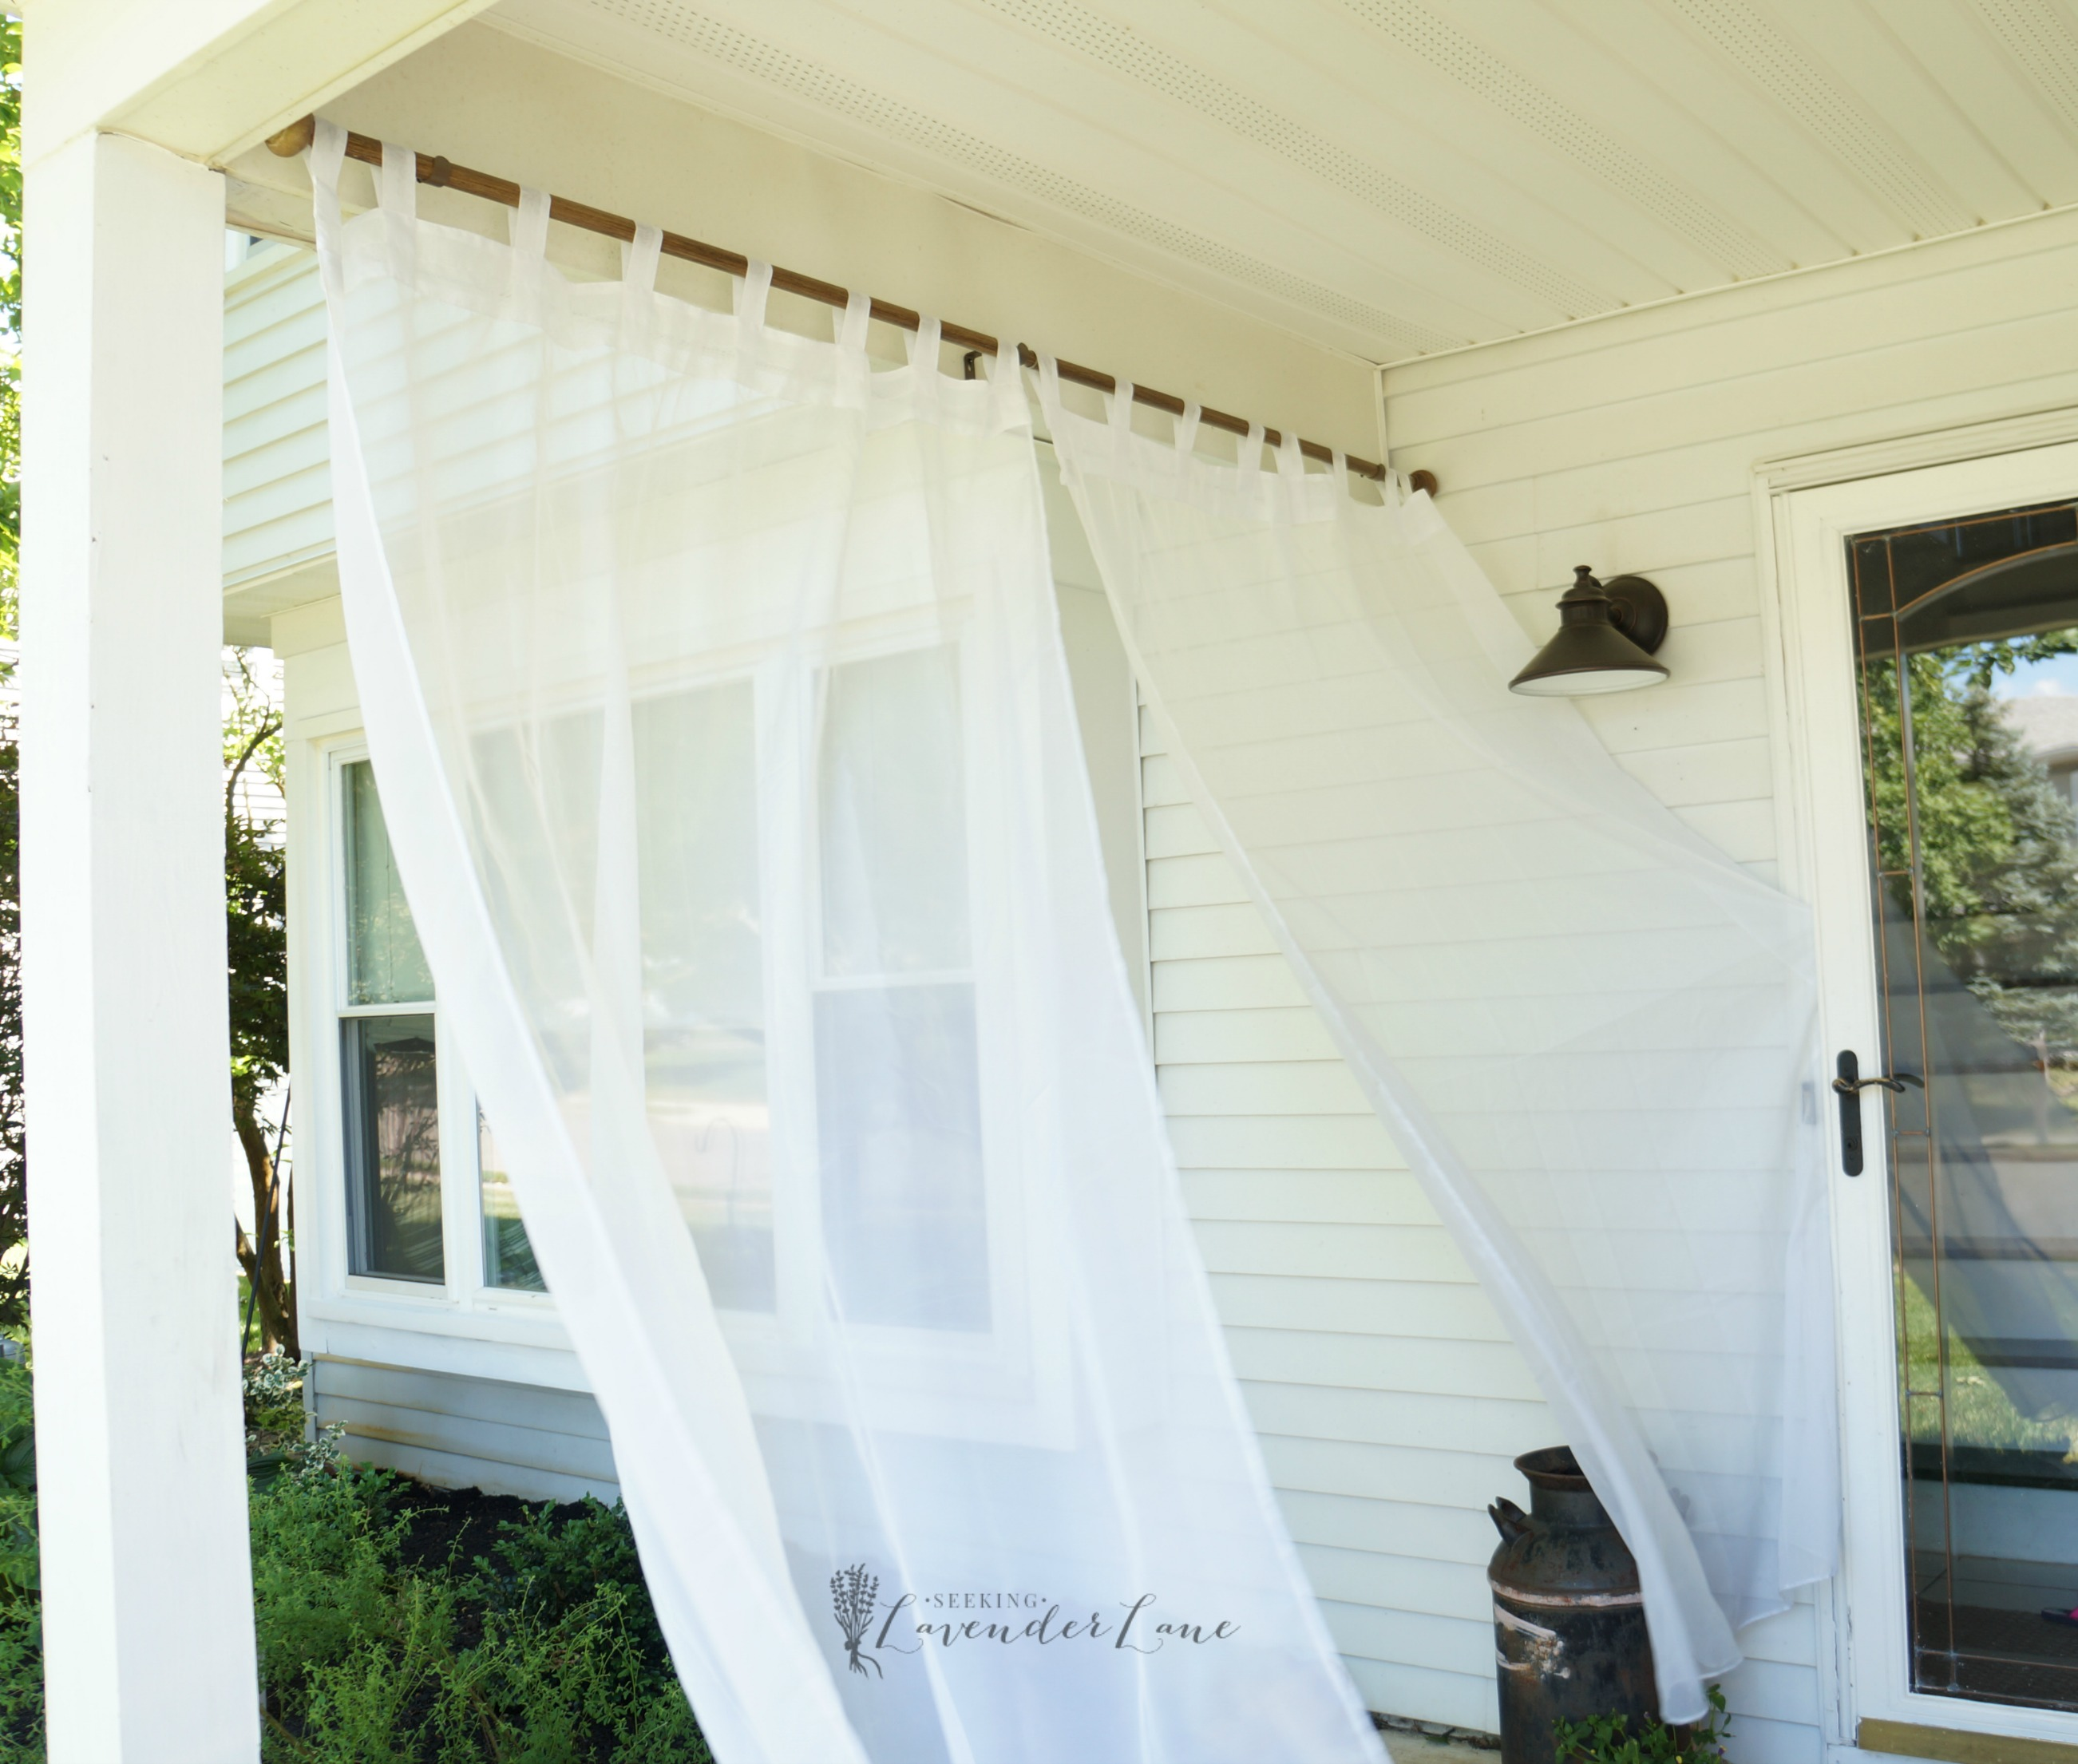 curtains smsender the outside outdoor bringing indoors co patio tulum cheap cabana